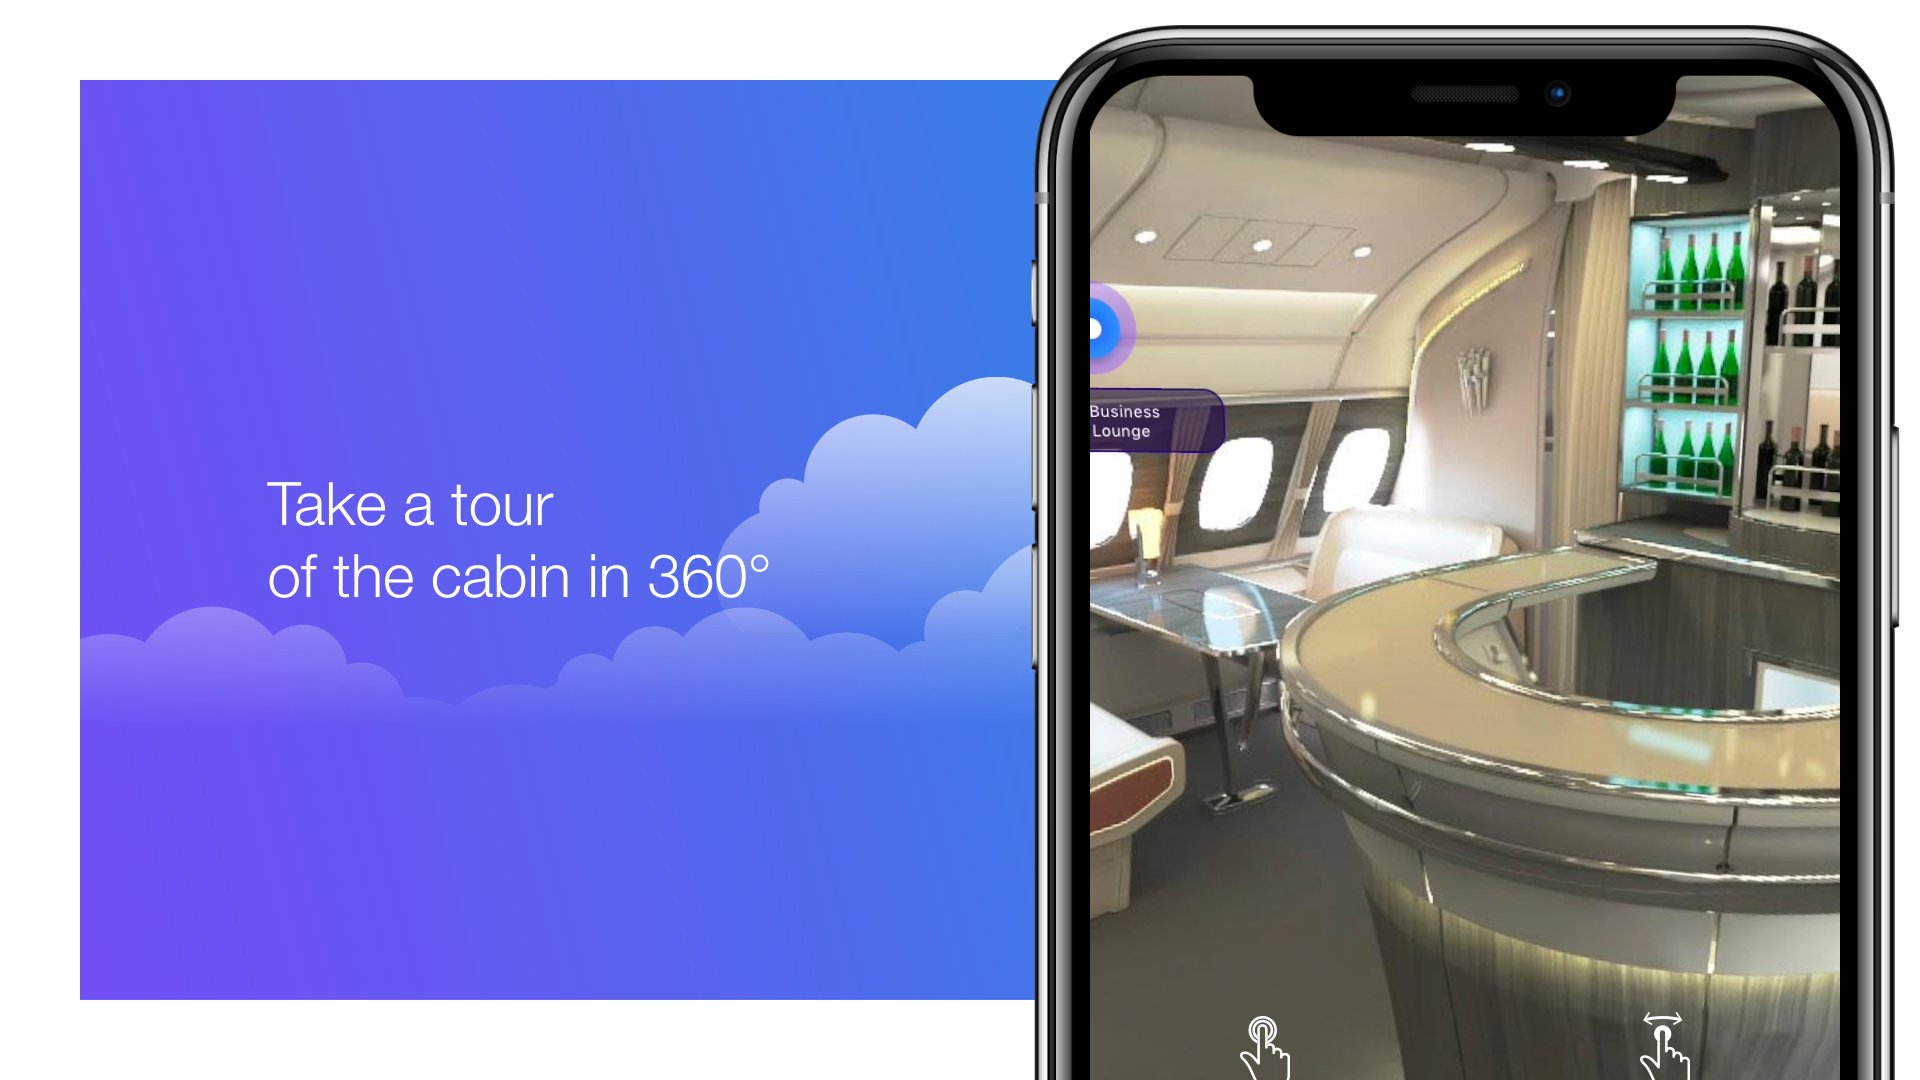 The iflyA380 app makes flying aboard Airbus' flagship jetliner a matter of choice rather than chance; with it, users can book an A380 flight and take a 360° tour of the cabin ahead of time